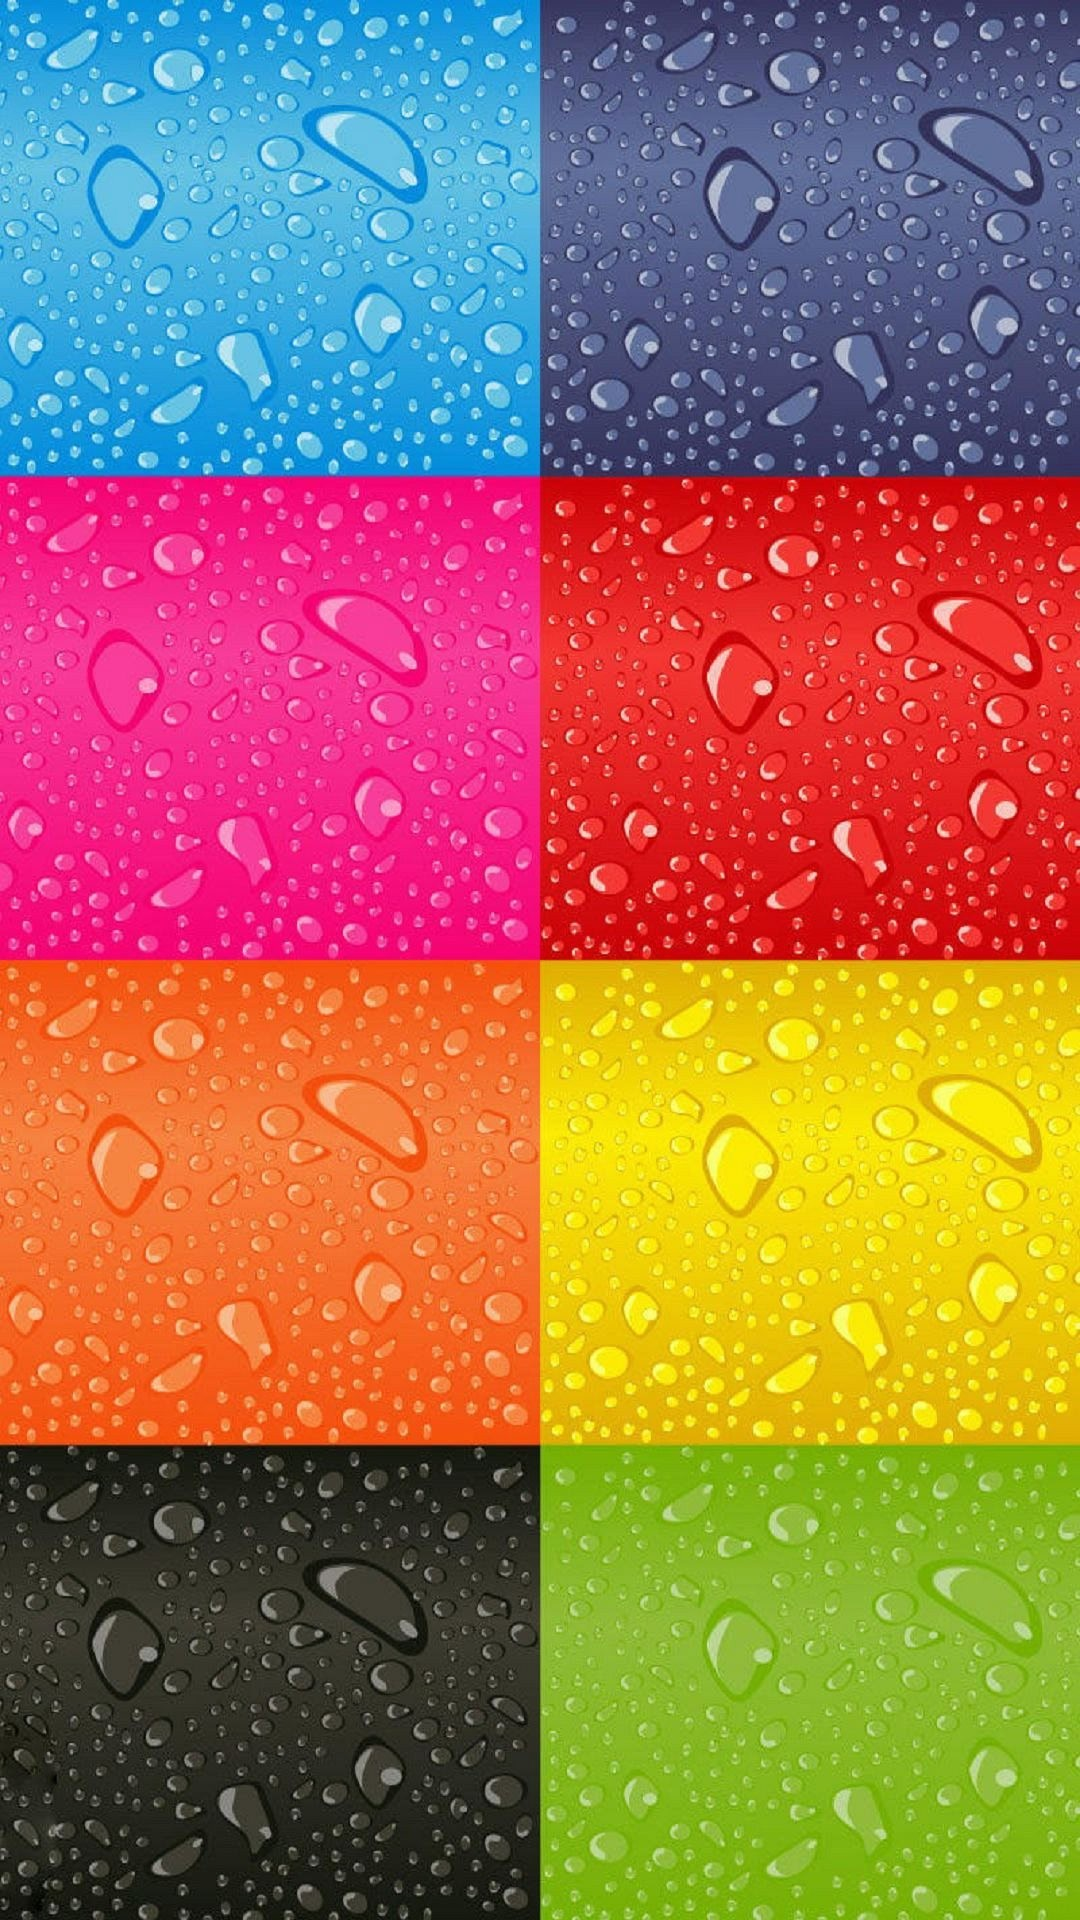 Colorful Android Hd Wallpapers For Home Screen